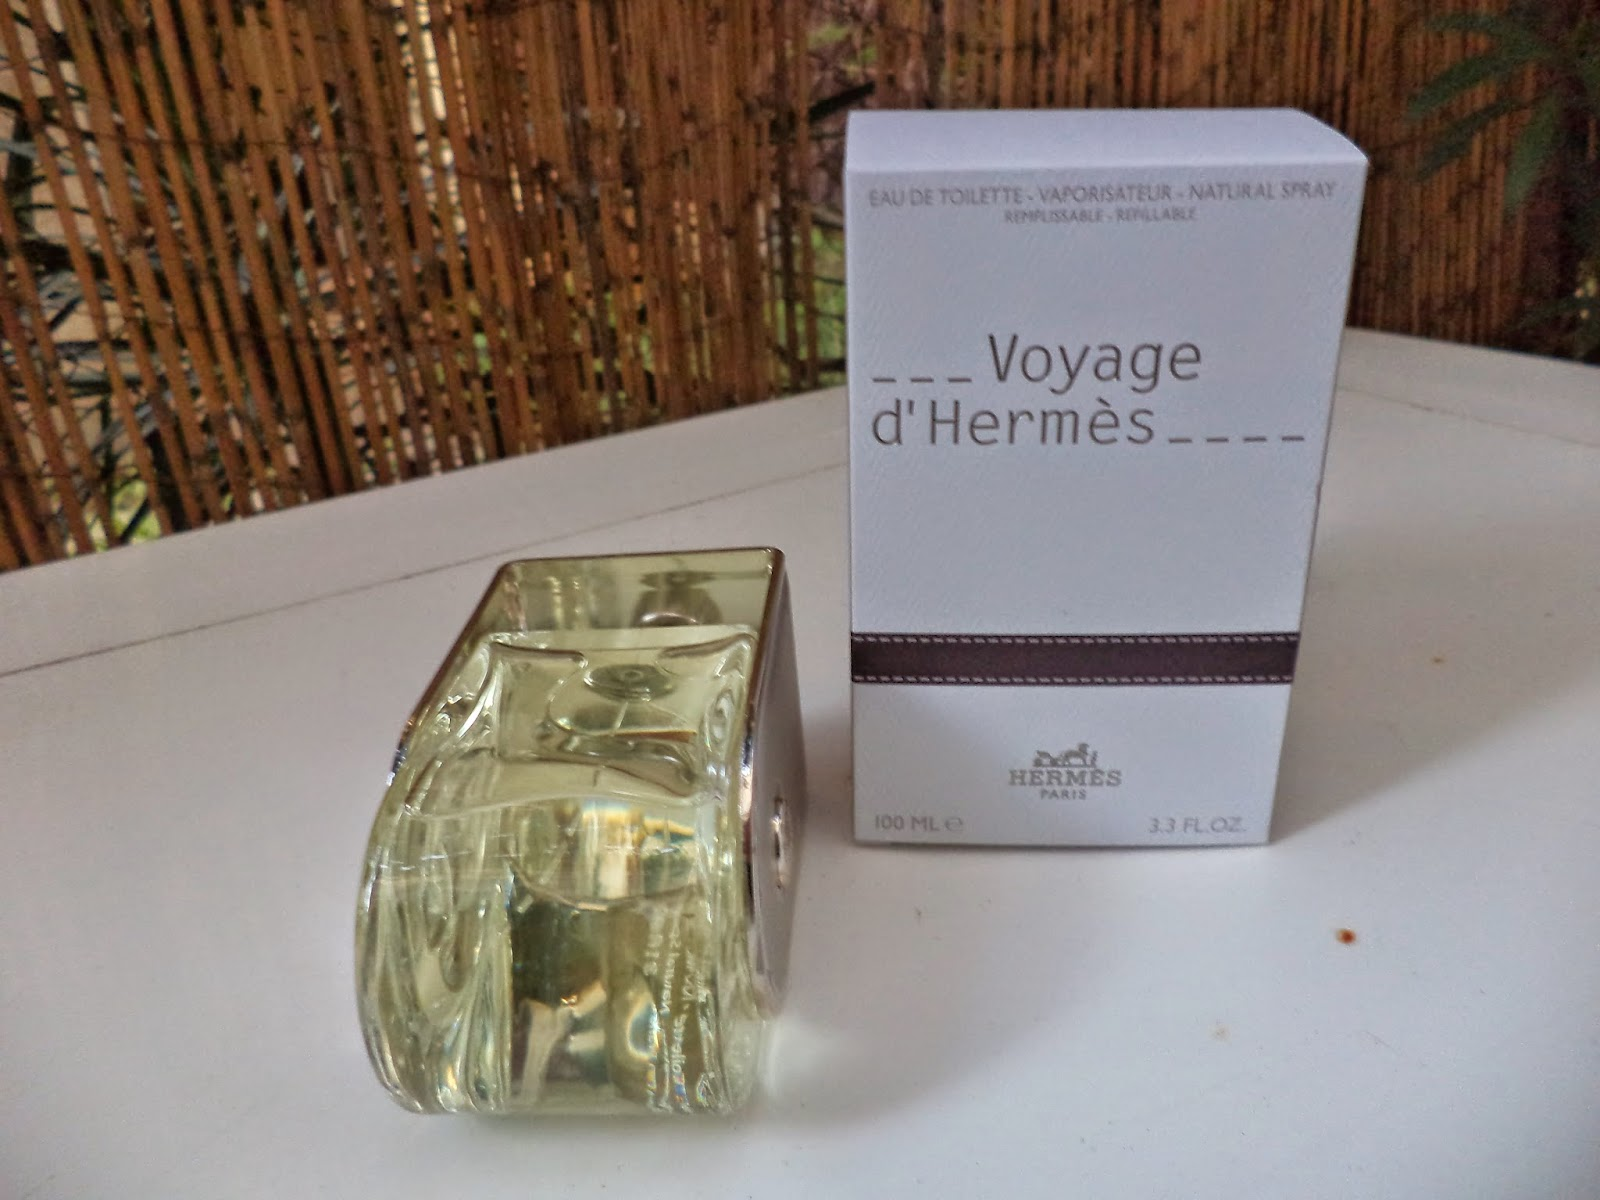 Beauty Made Fun Review Hermes Voyage Dhermes Unisex From What I Understand All Scents Are Rather Unique And Unusual Though So They Cant Really Be Confused With Other Would Definitely